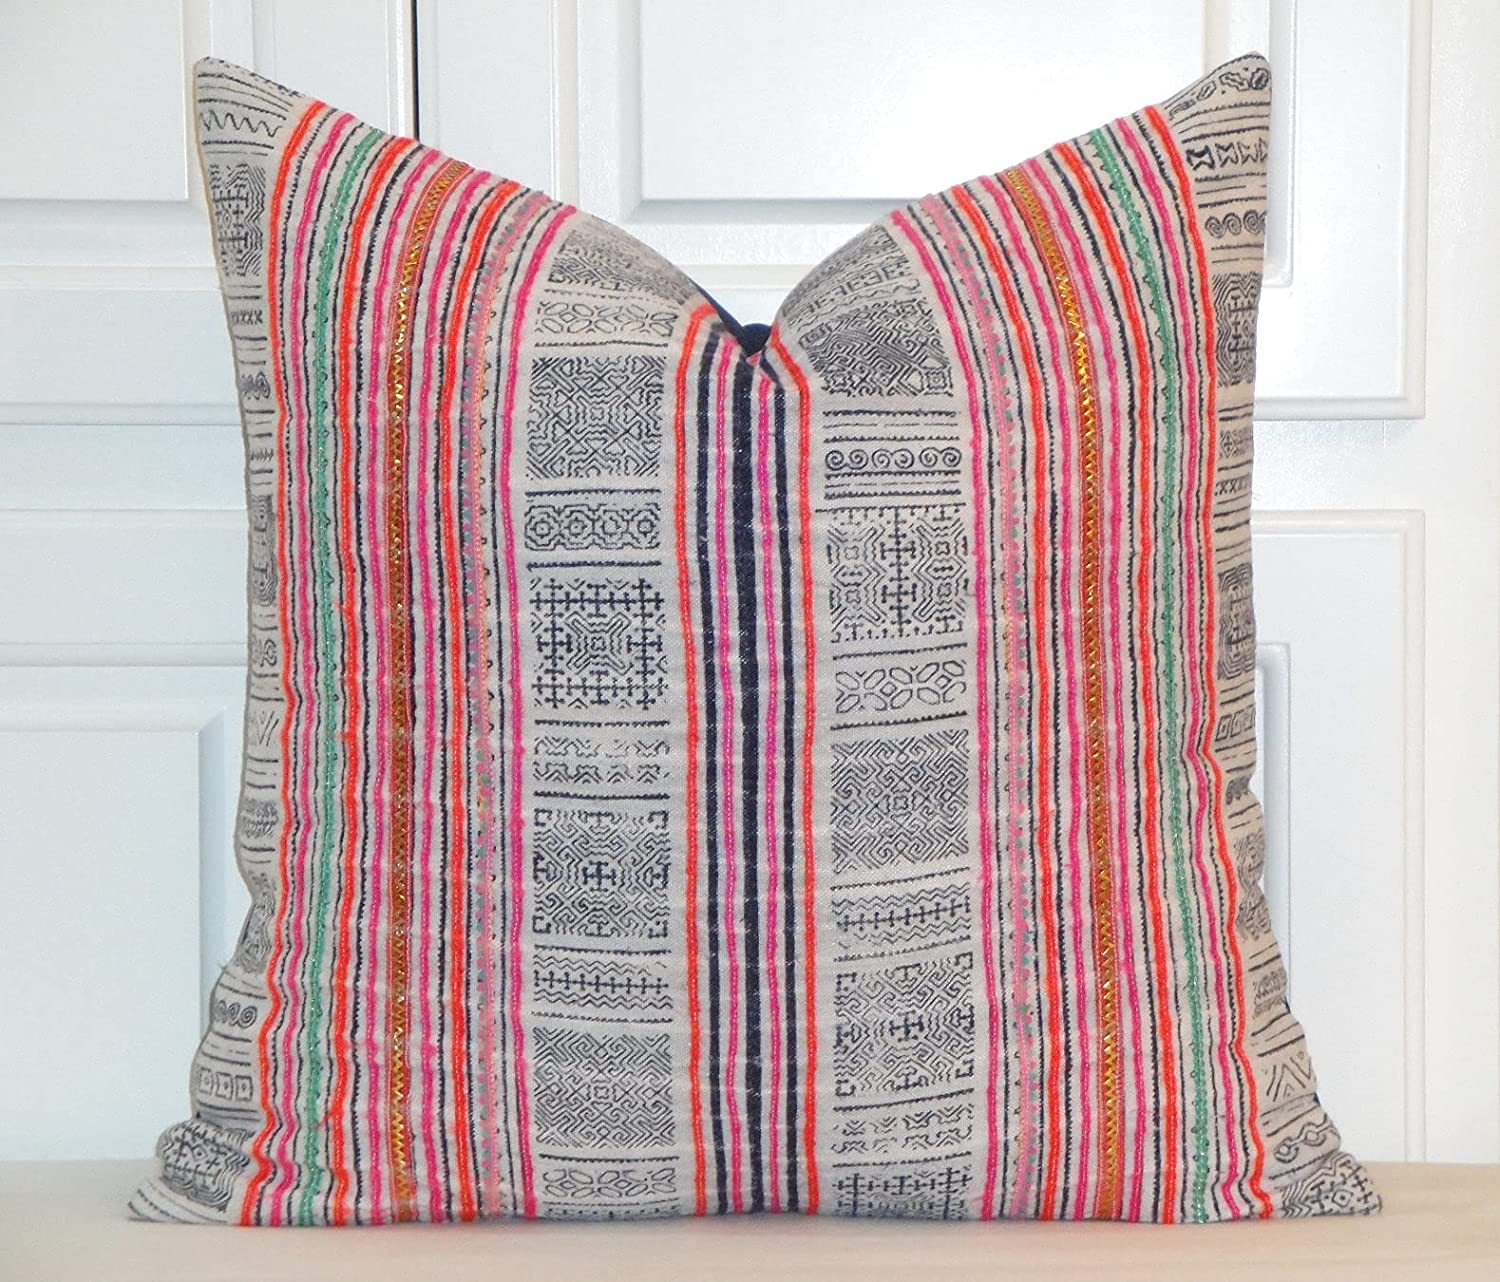 Vintage Hmong Tribal and Vintage Rustic Floral Throw Pillow Cover Chic Farmhouse Decor Cushion Cover Standard Pillow Case for Floor Party Decor Living Room Sofa Couch Gift for Her Pillowcase